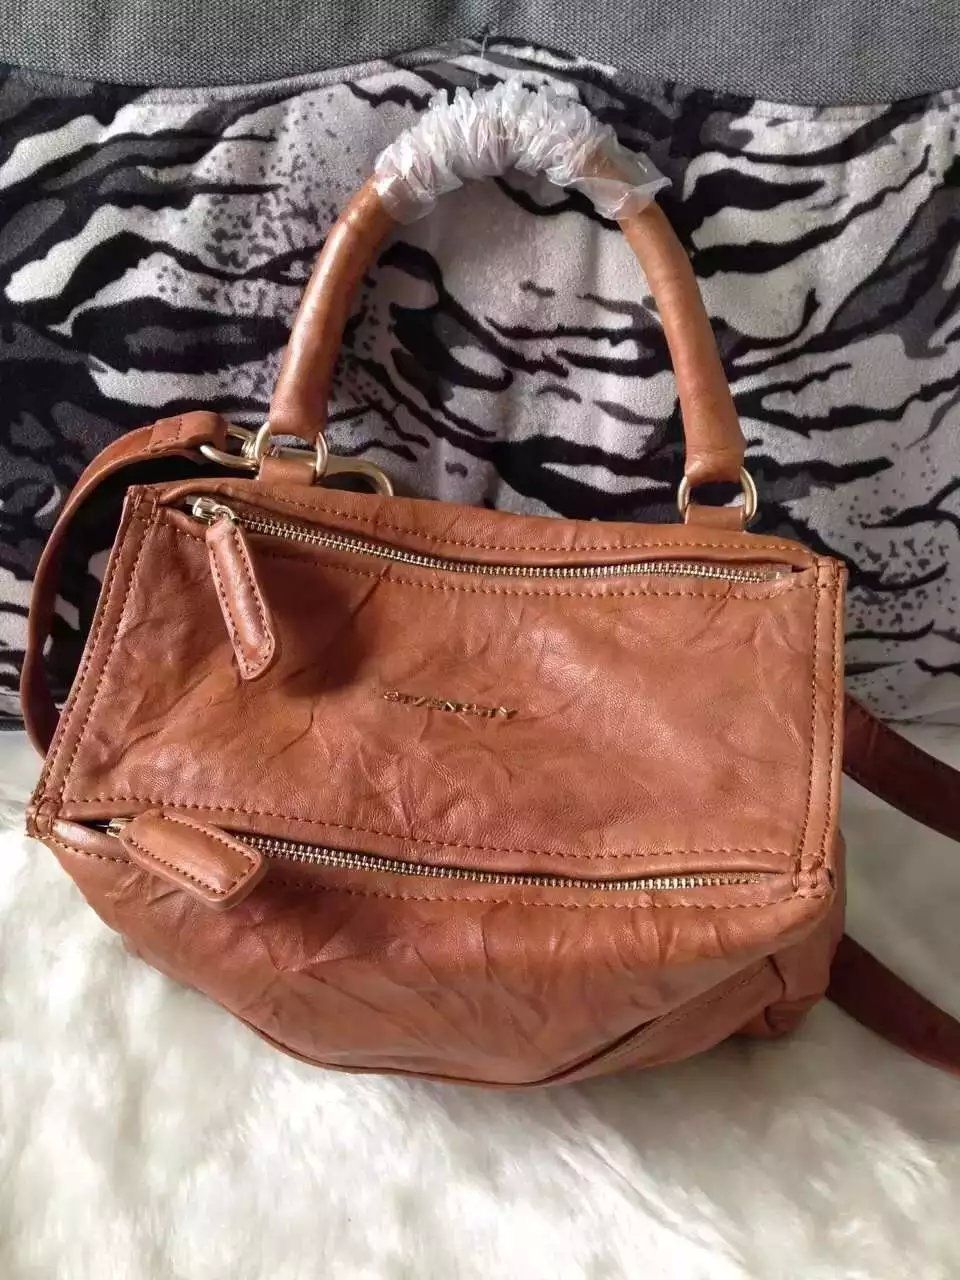 S S 2016 Givenchy Collection Outlet-Givenchy  PANDORA  Small Camel Pepe  Sheepskin Leather Bag Sale Online 32c26a91d36fd